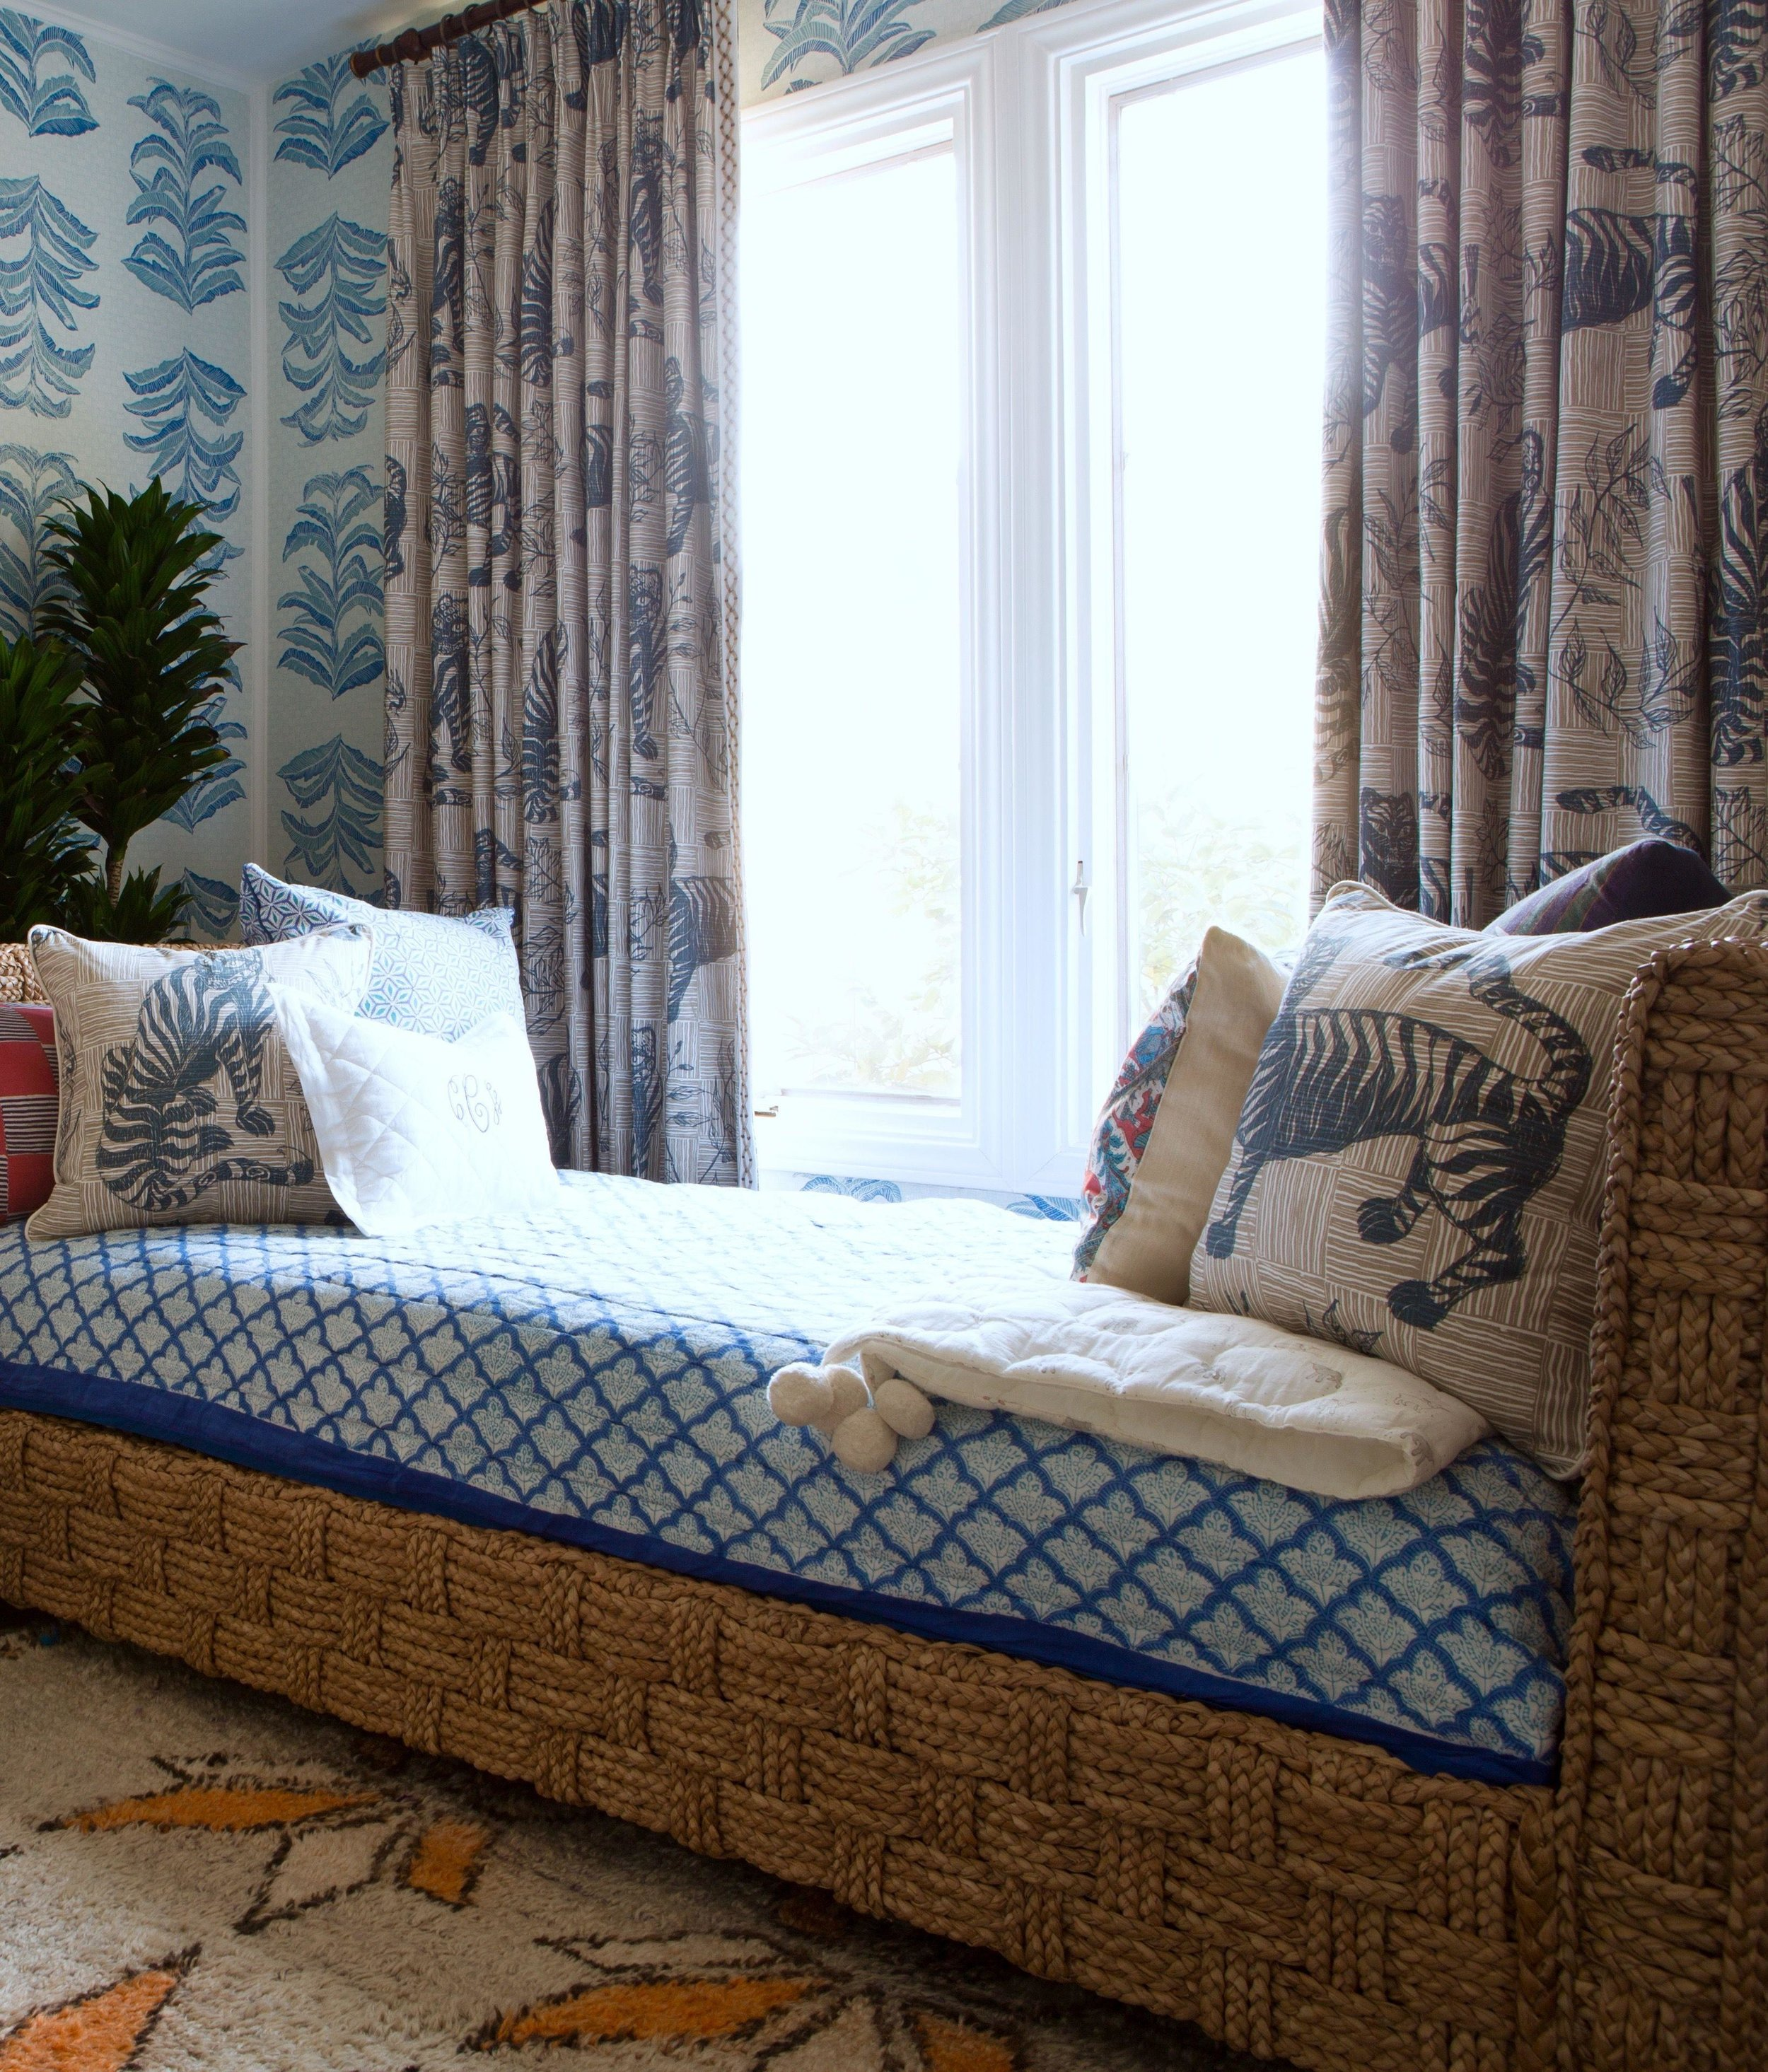 Tiger & Magpie Fabric in Deep Blue, Interiors by Sharon Lee, Featured in House Beautiful, Photo by Karyn Millet